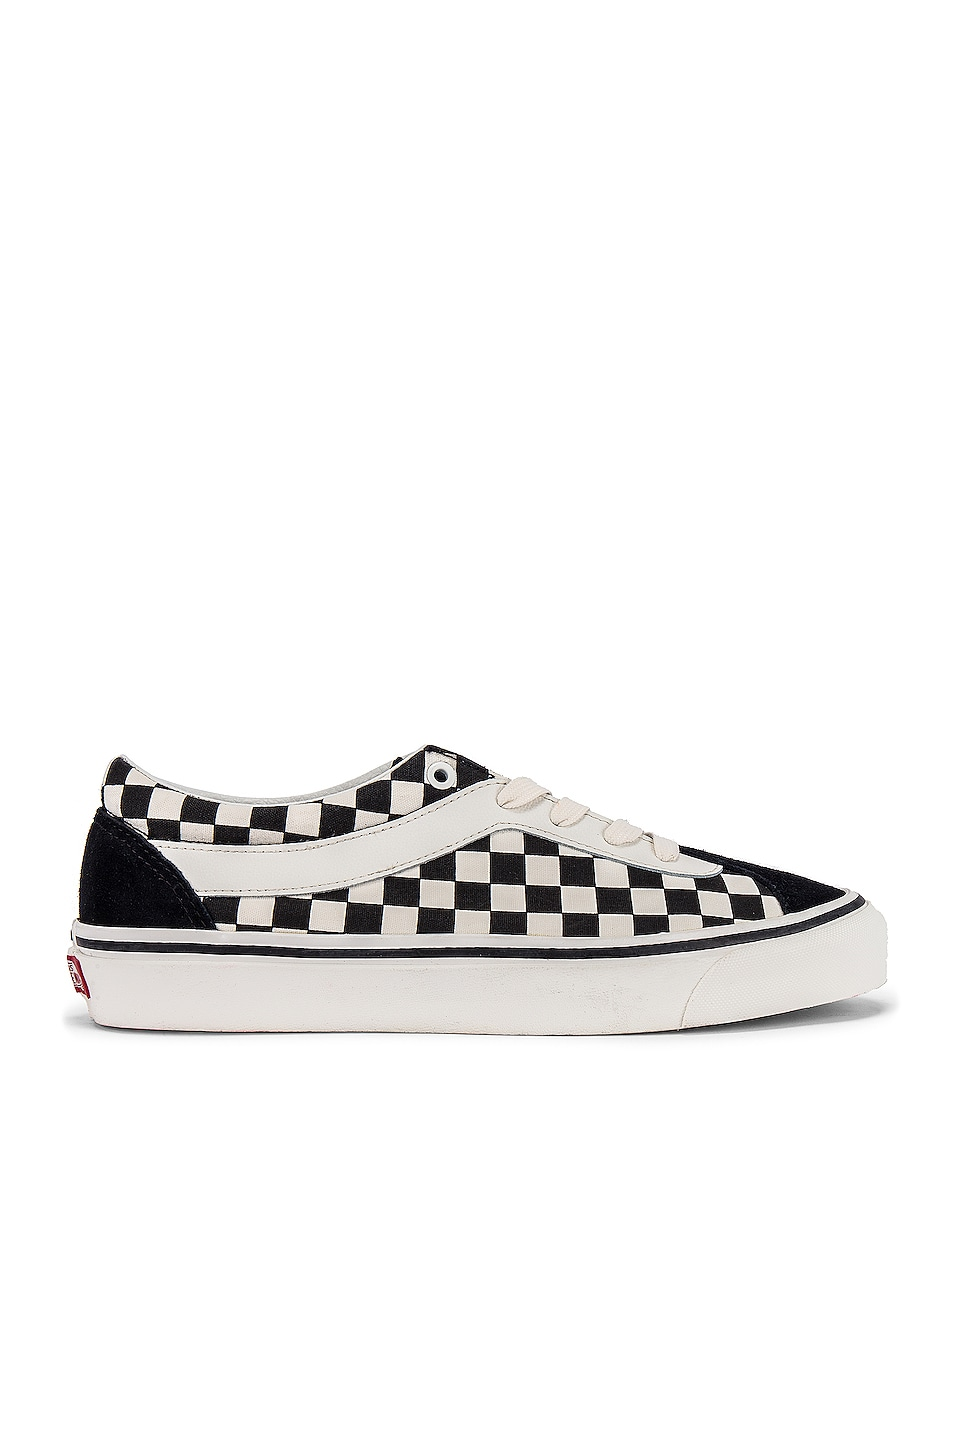 Vans ZAPATILLAS DEPORTIVAS CHECKERED